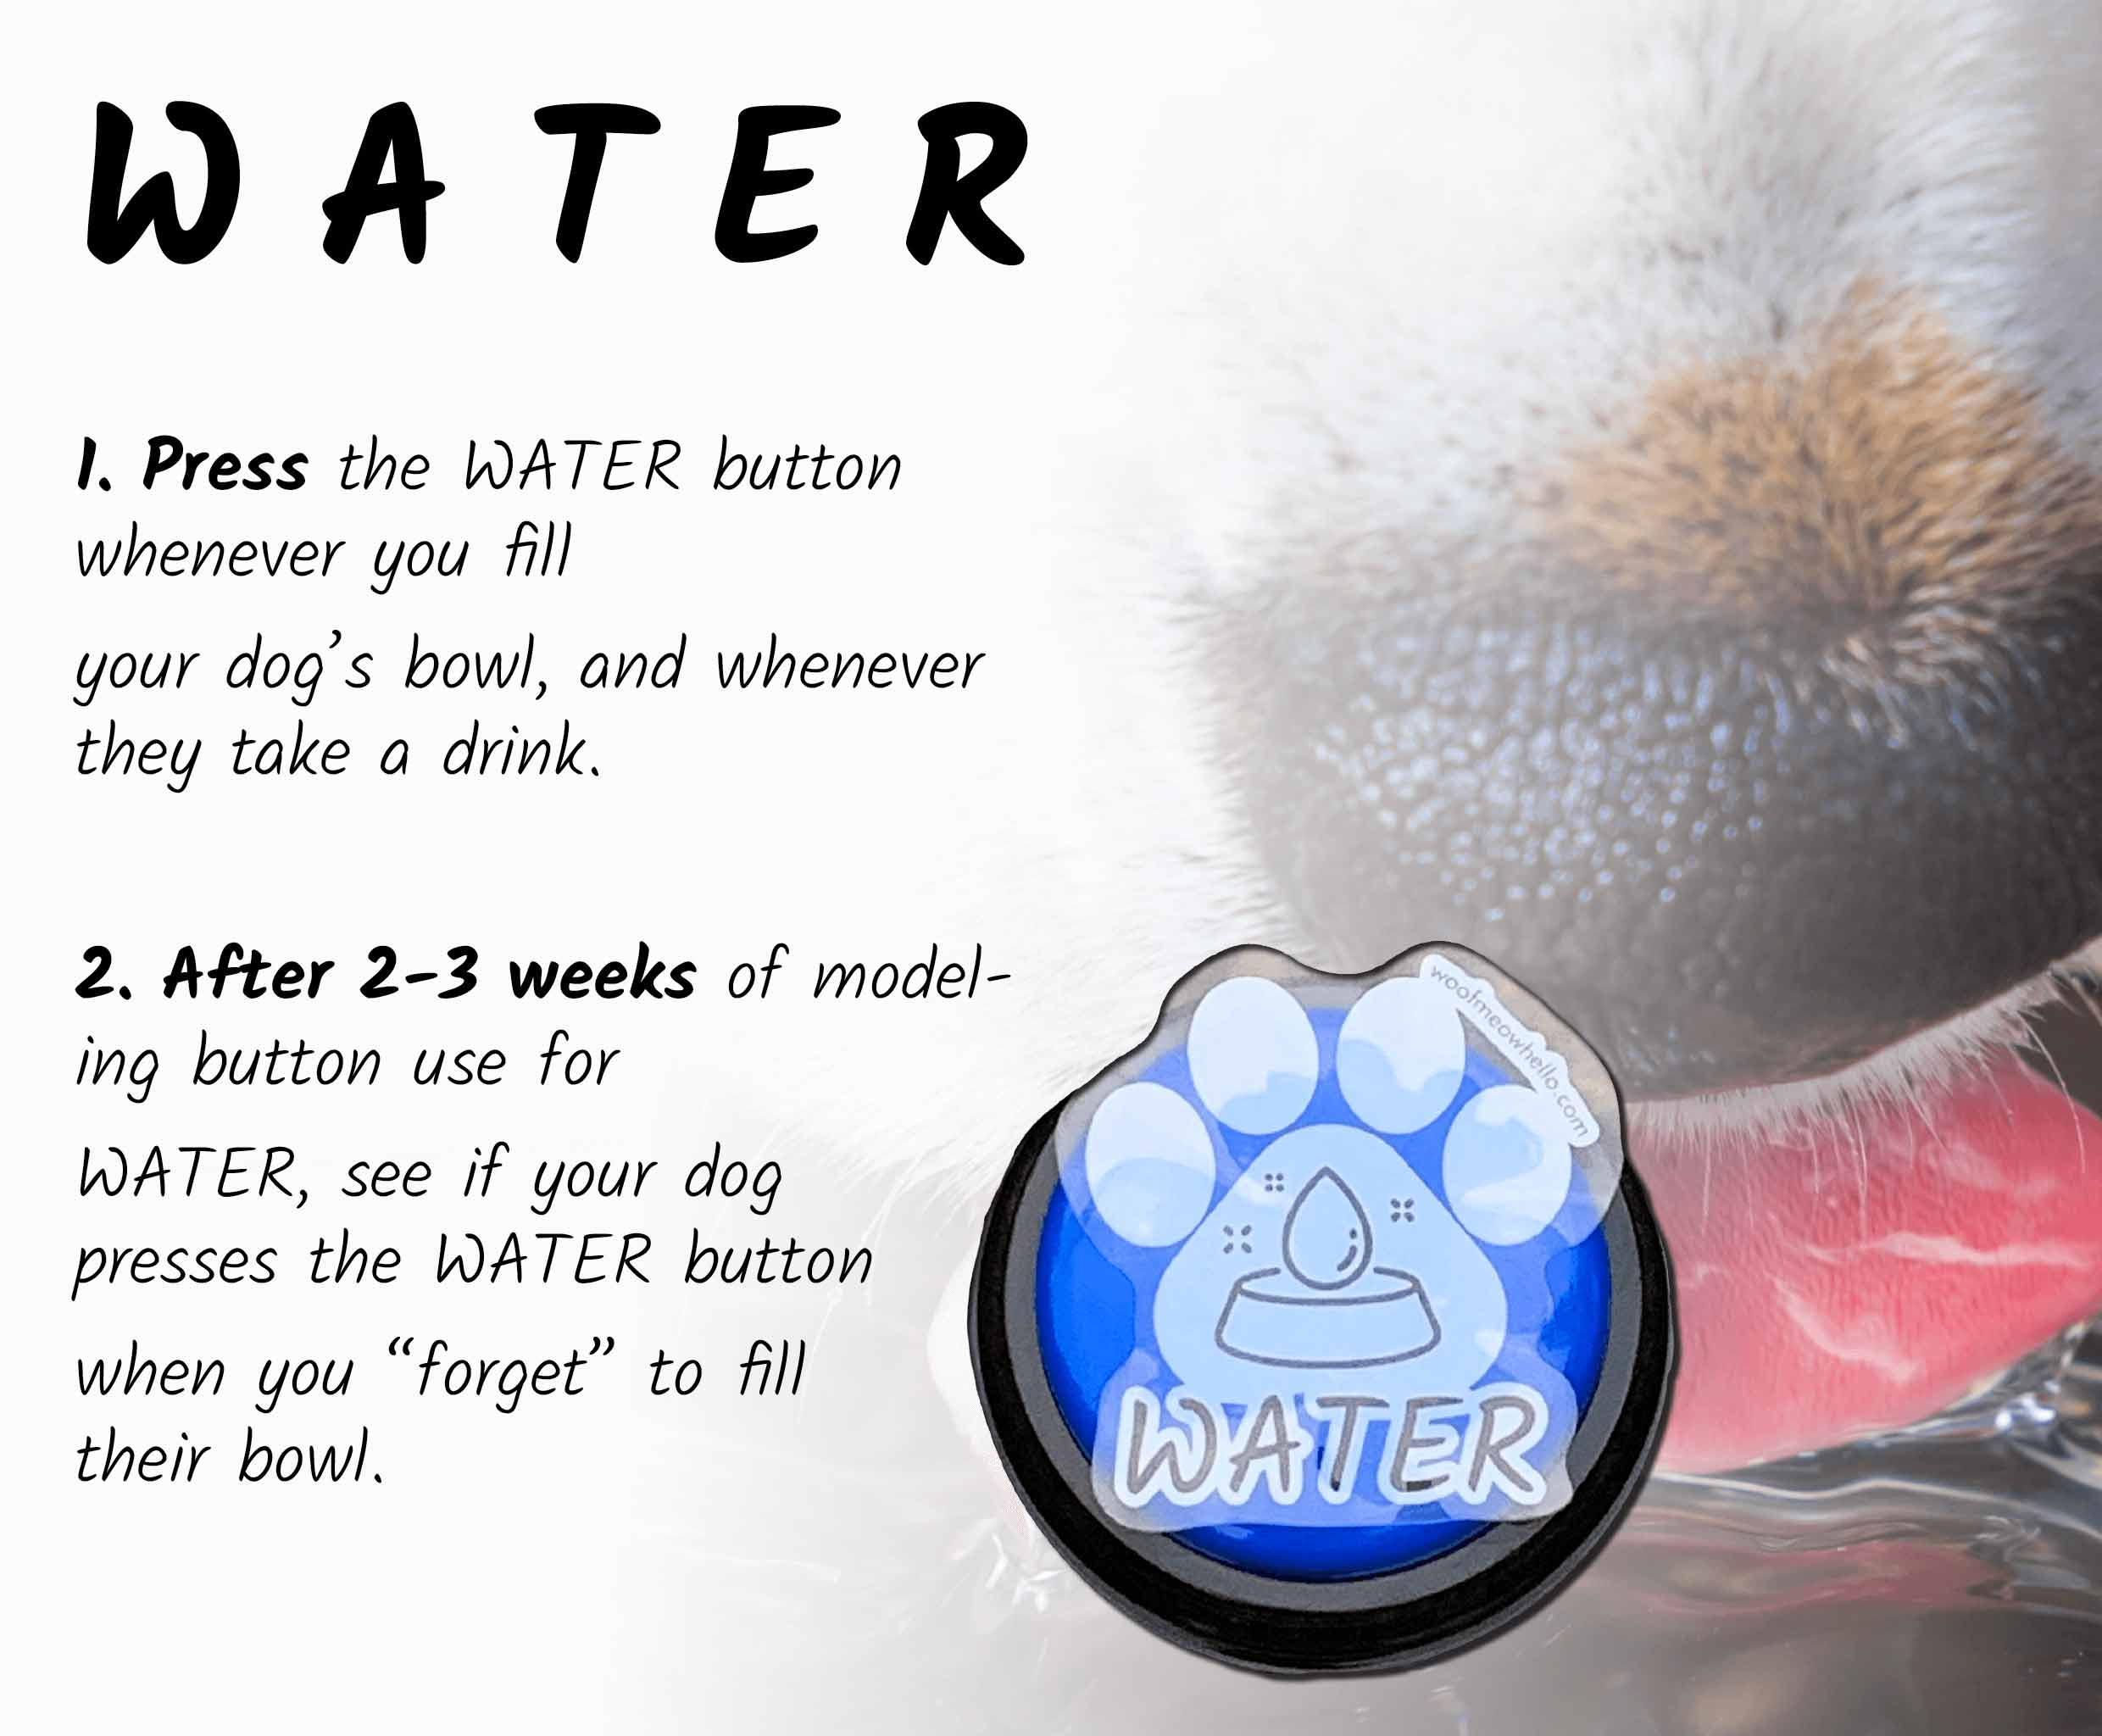 """Press the water button whenever you fill your dog's bowl, and whenever they take a drink. After 2-3 weeks of modeling button use for water, see if your dog presses the WATER button when you """"forget"""" to fill their bowl."""